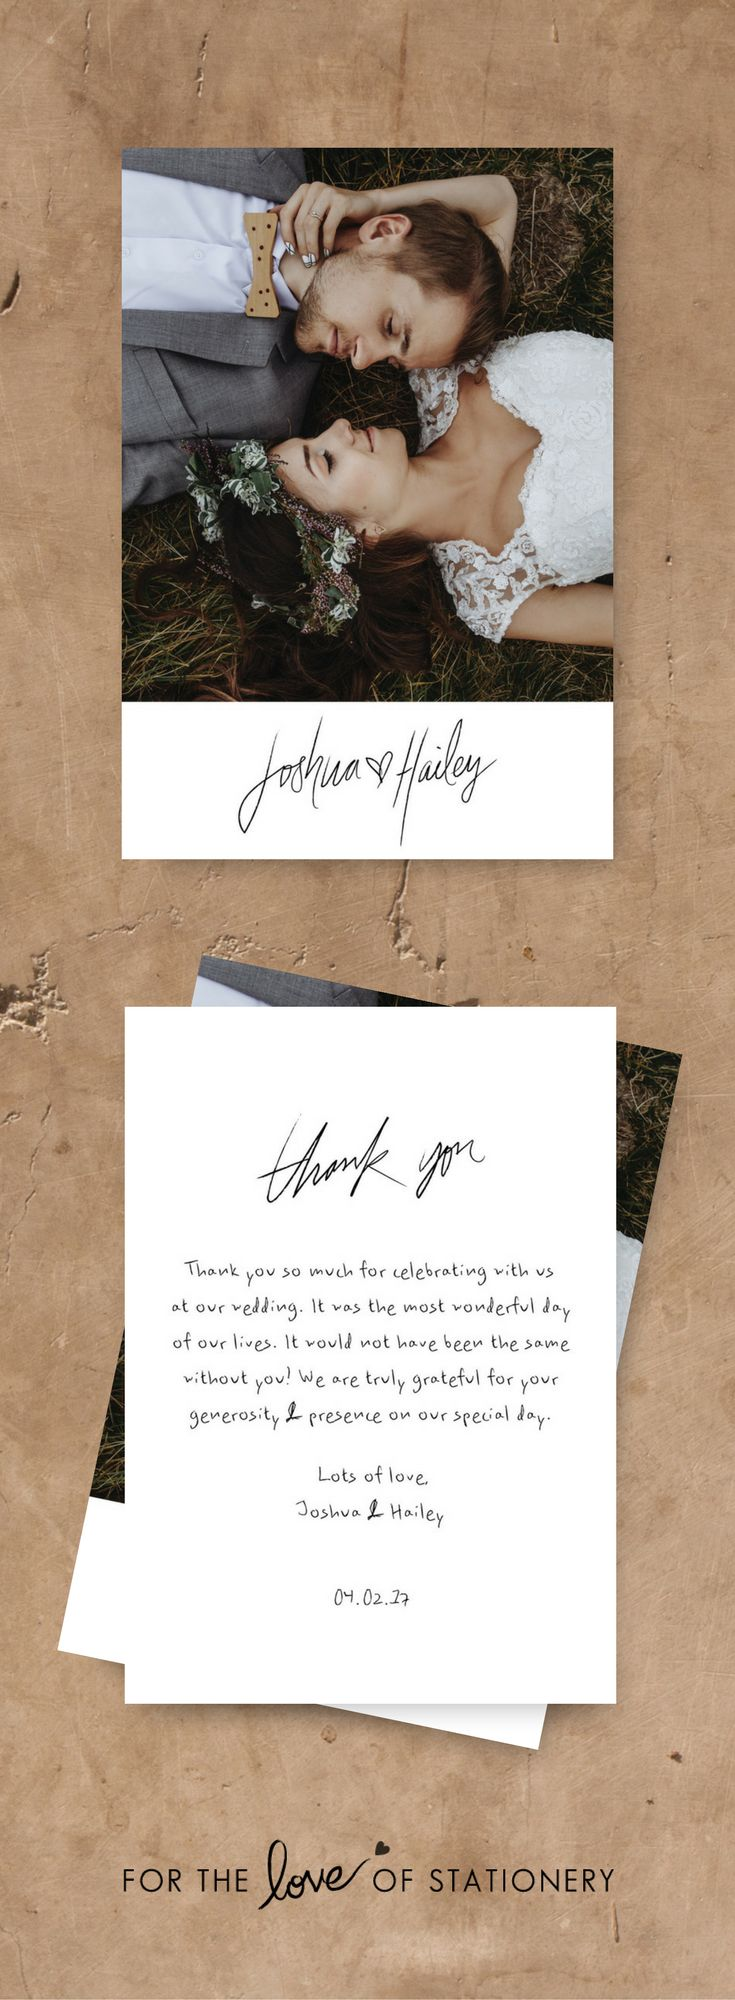 Rustic Wedding Inspiration   Wedding Thank You Cards   Modern Calligraphy   Thank You Cards with Photos   For the Love of Stationery